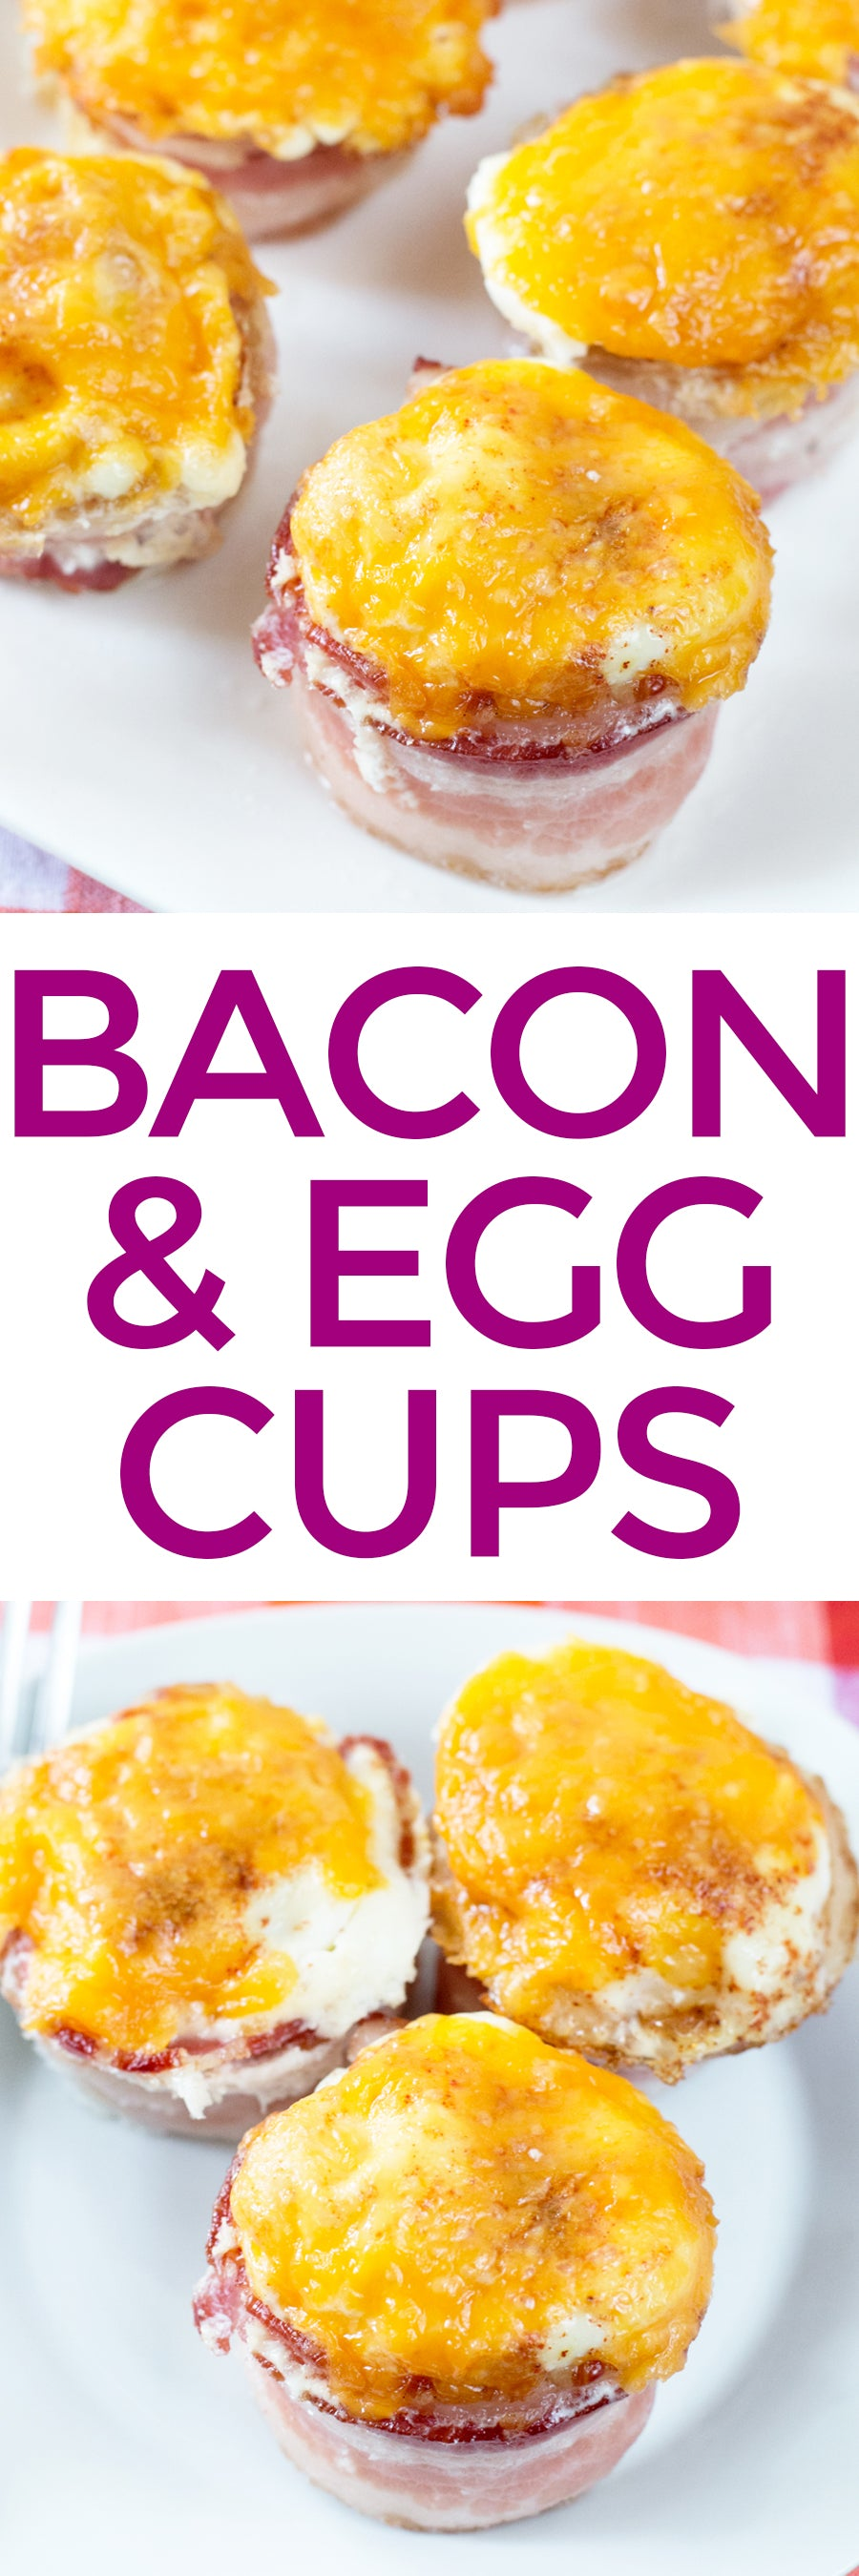 The Perfect BAE Cups (Bacon & Egg) | pigofthemonth.com #bacon #breakfast #brunch